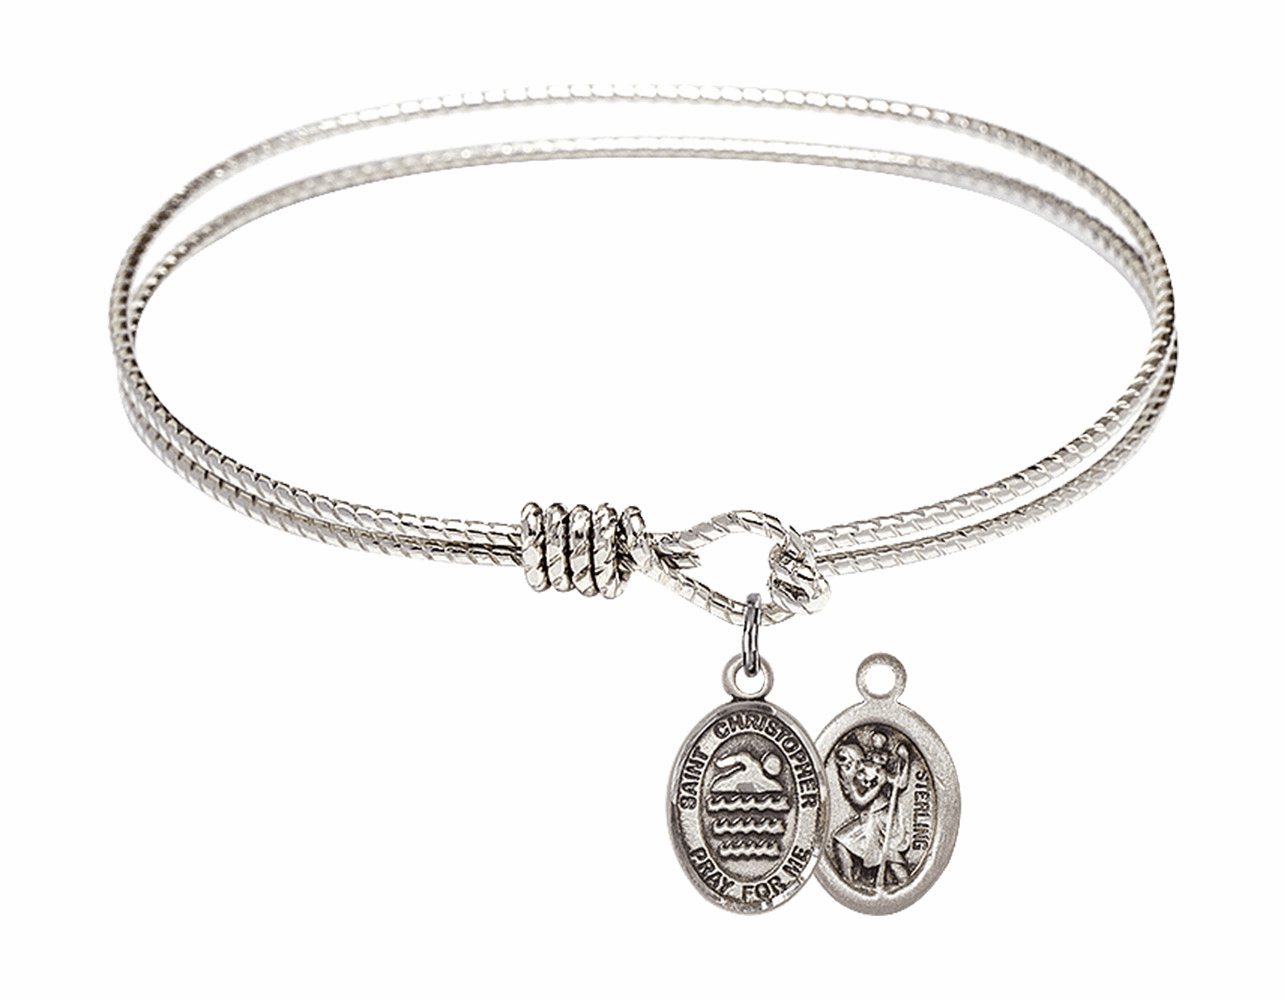 Twist Round Eye Hook St Christopher Swimming Bangle Charm Bracelet by Bliss